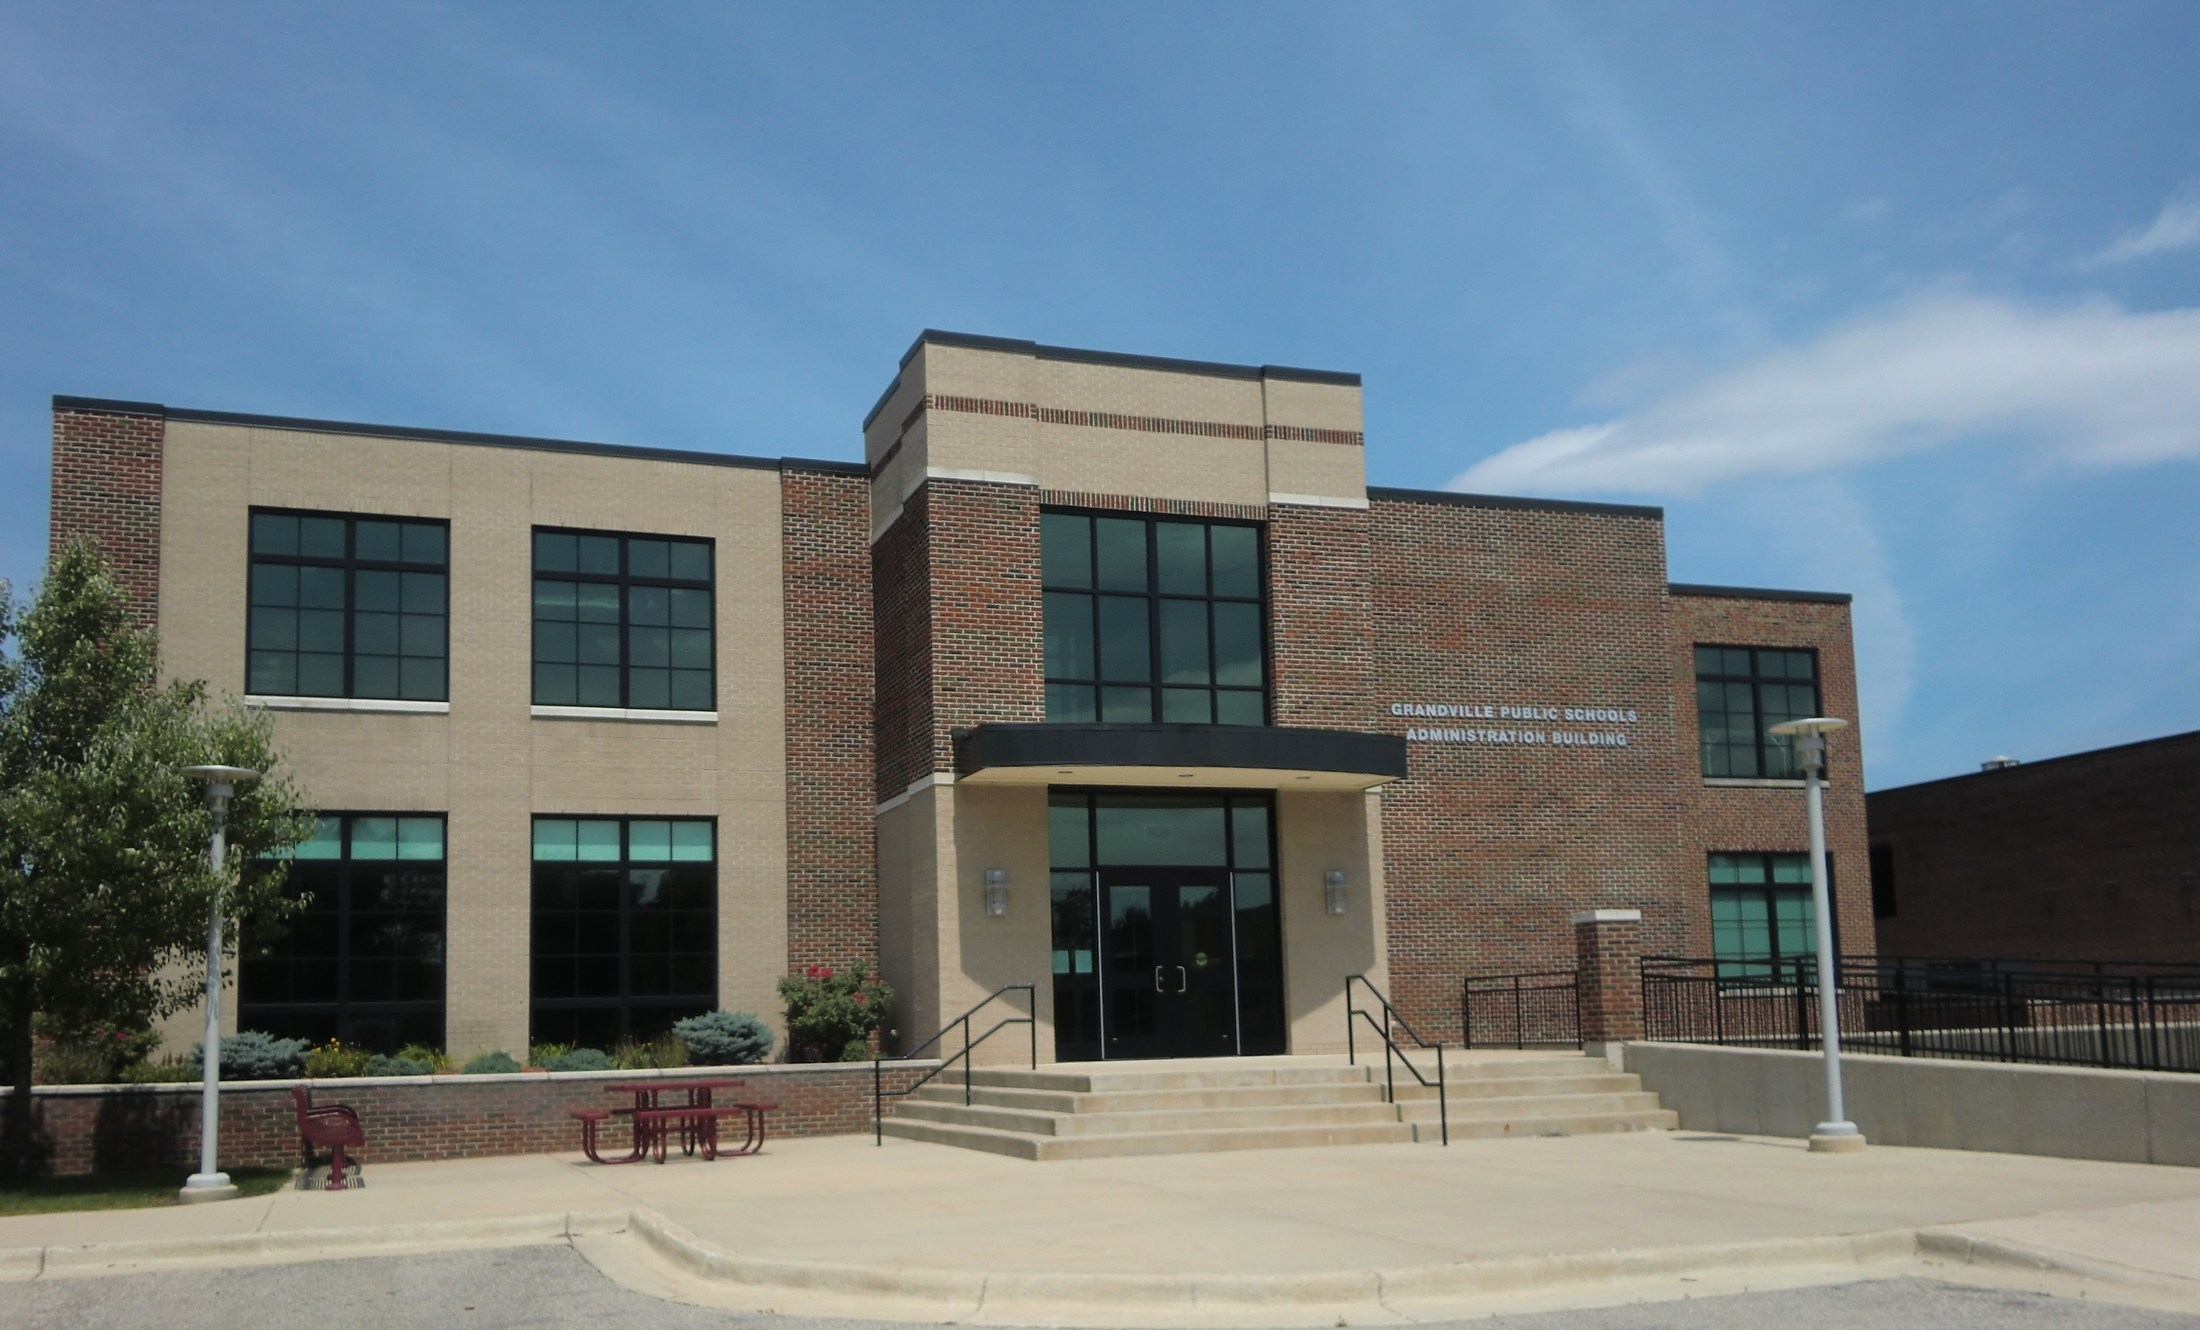 exterior of Administration building